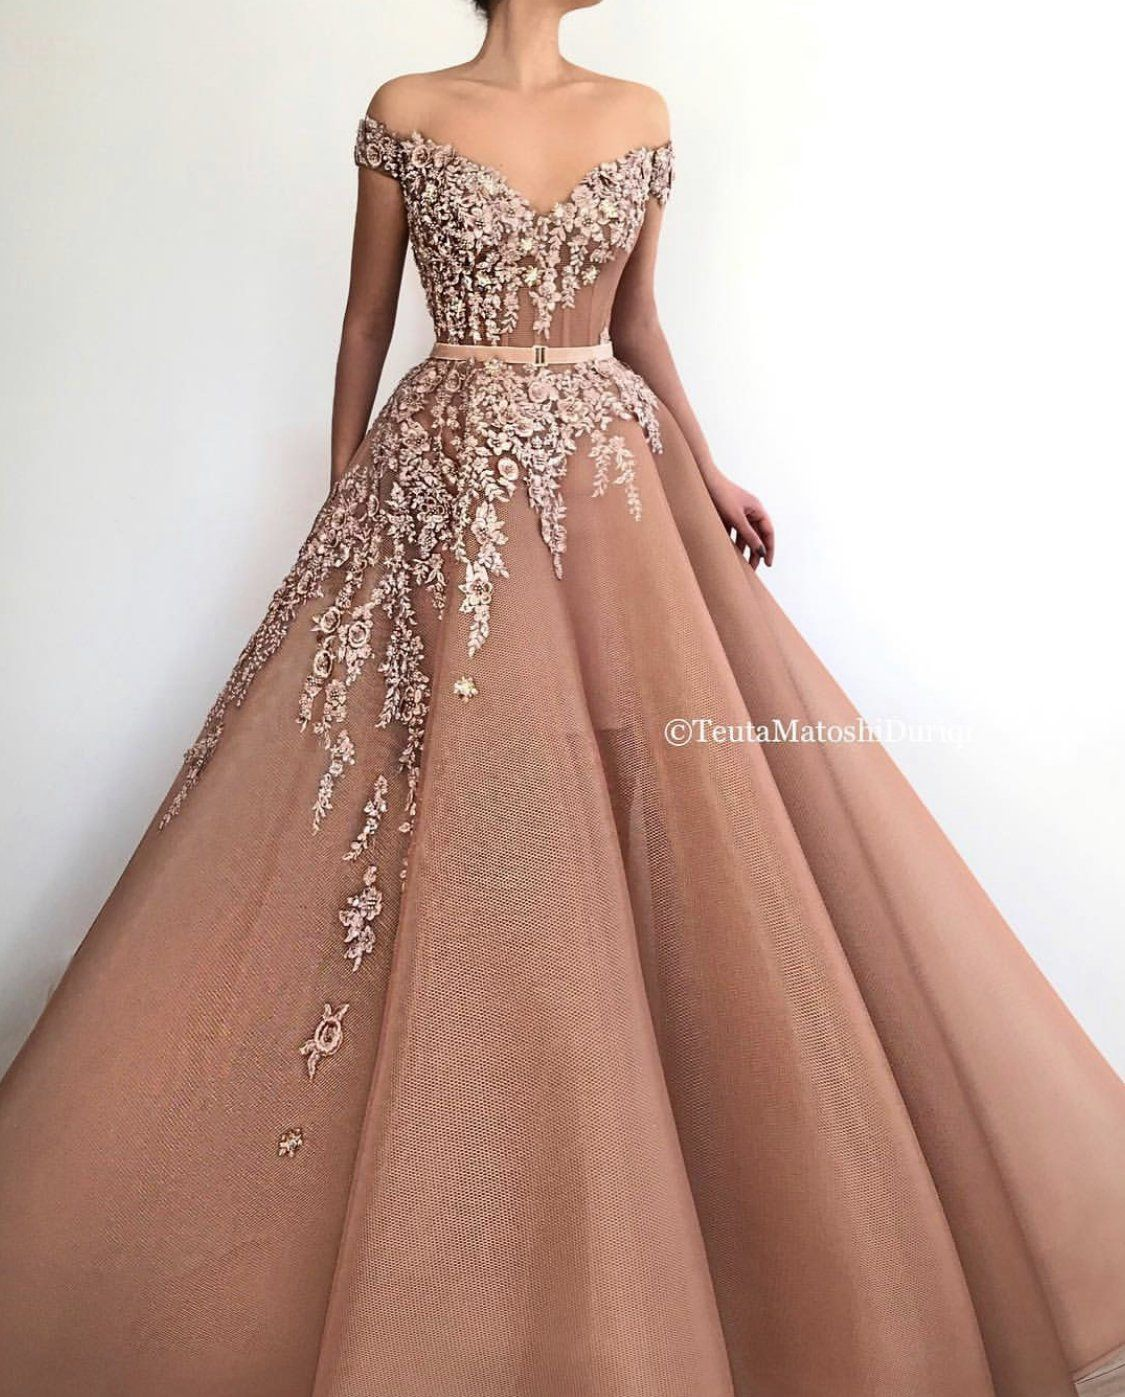 Flary Princess Gown Sweetheart Evening Dress Long Prom Gowns